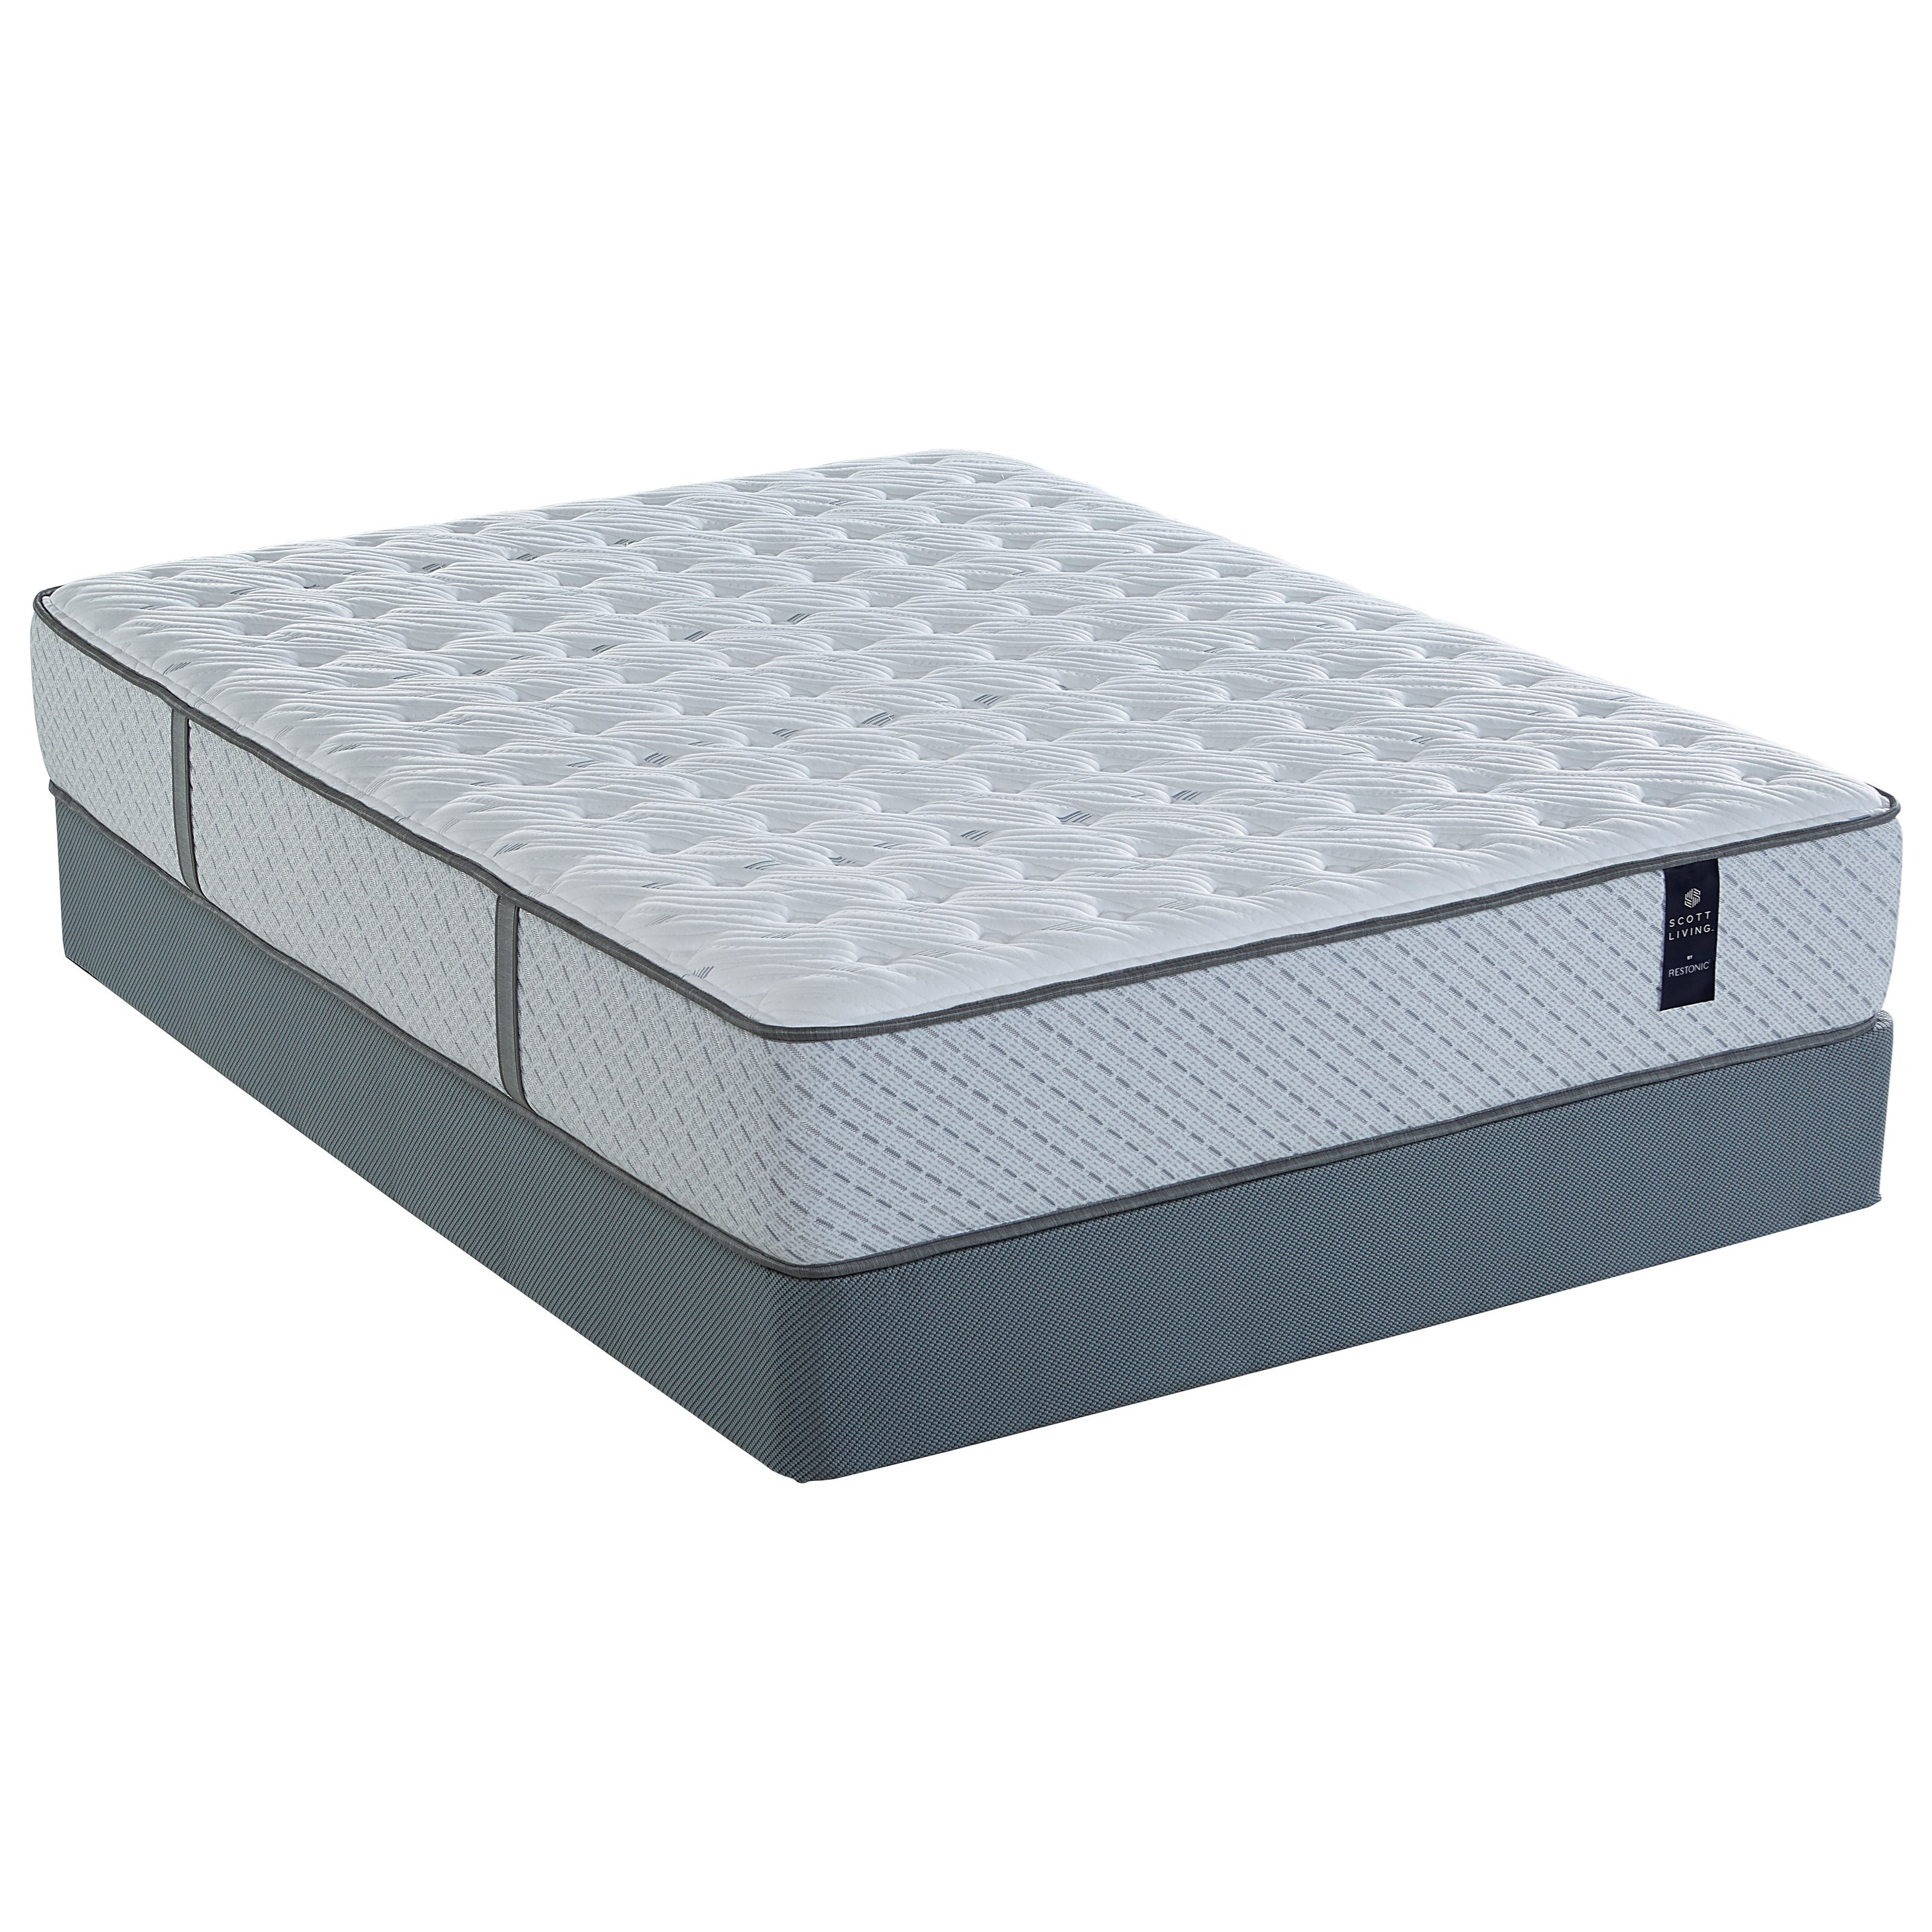 Juniper Extra Firm Twin XL Pocketed Coil Mattress Set by Restonic at Wilcox Furniture